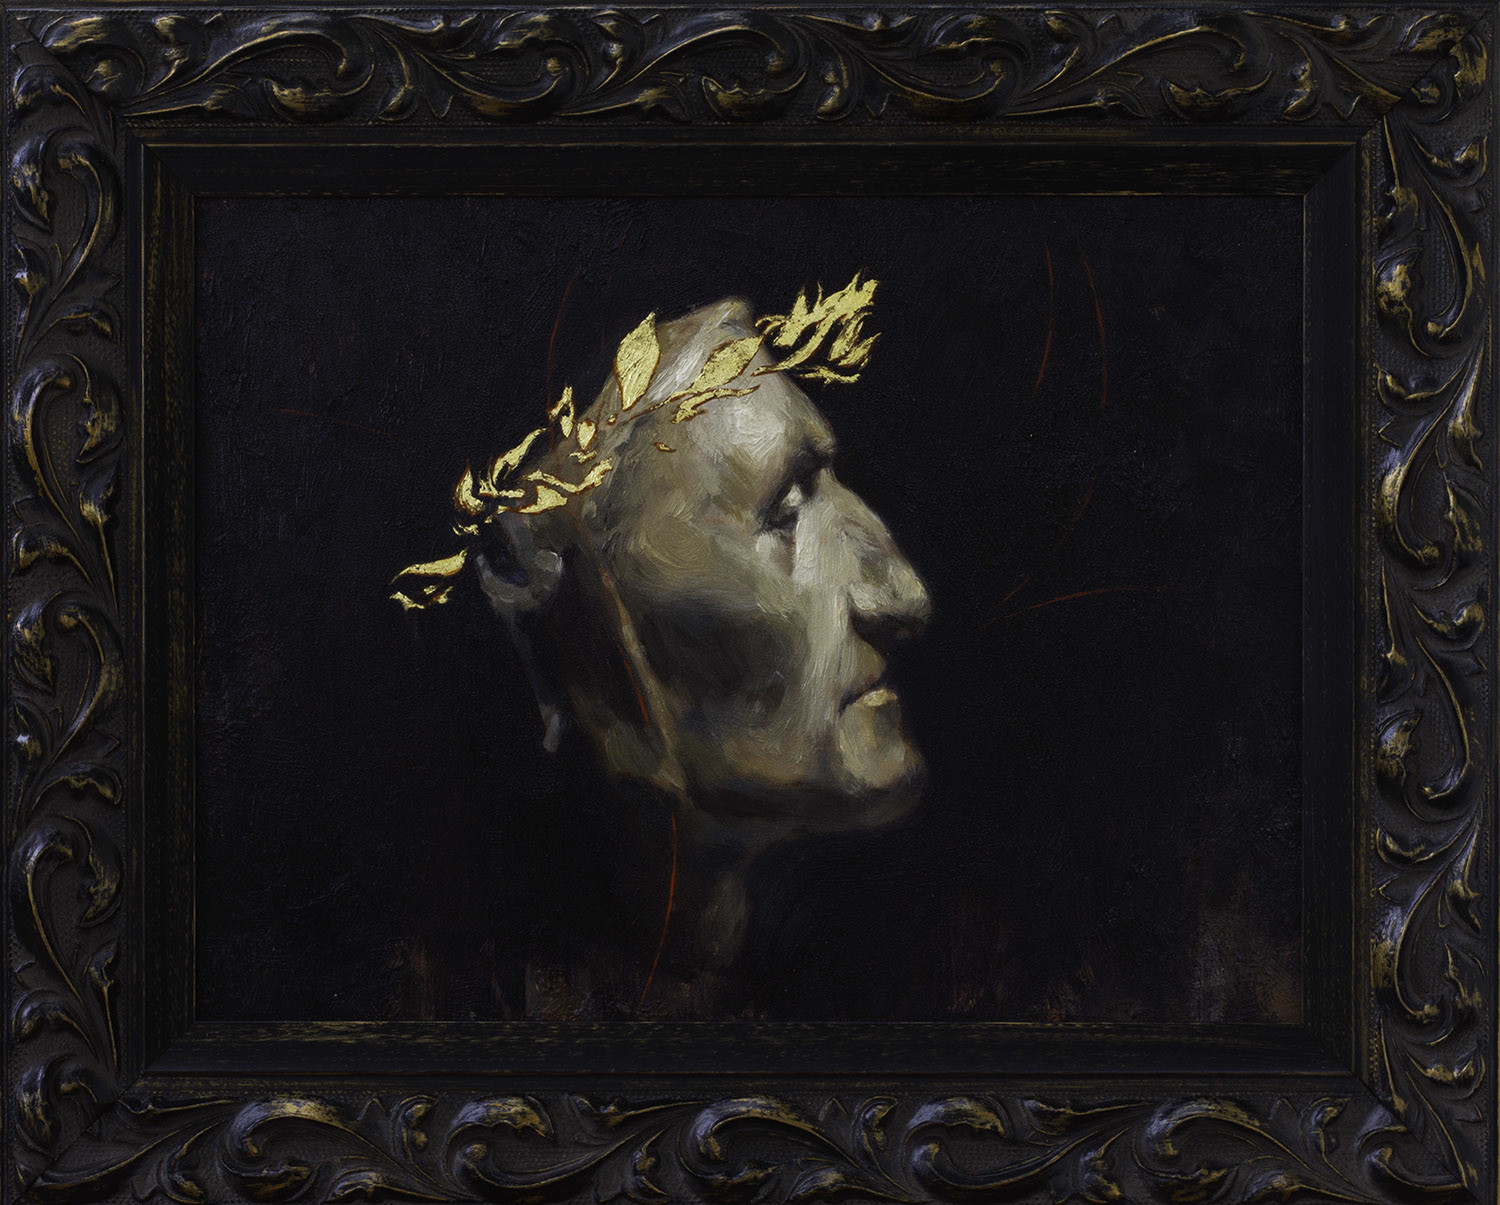 il Sommo Poeta